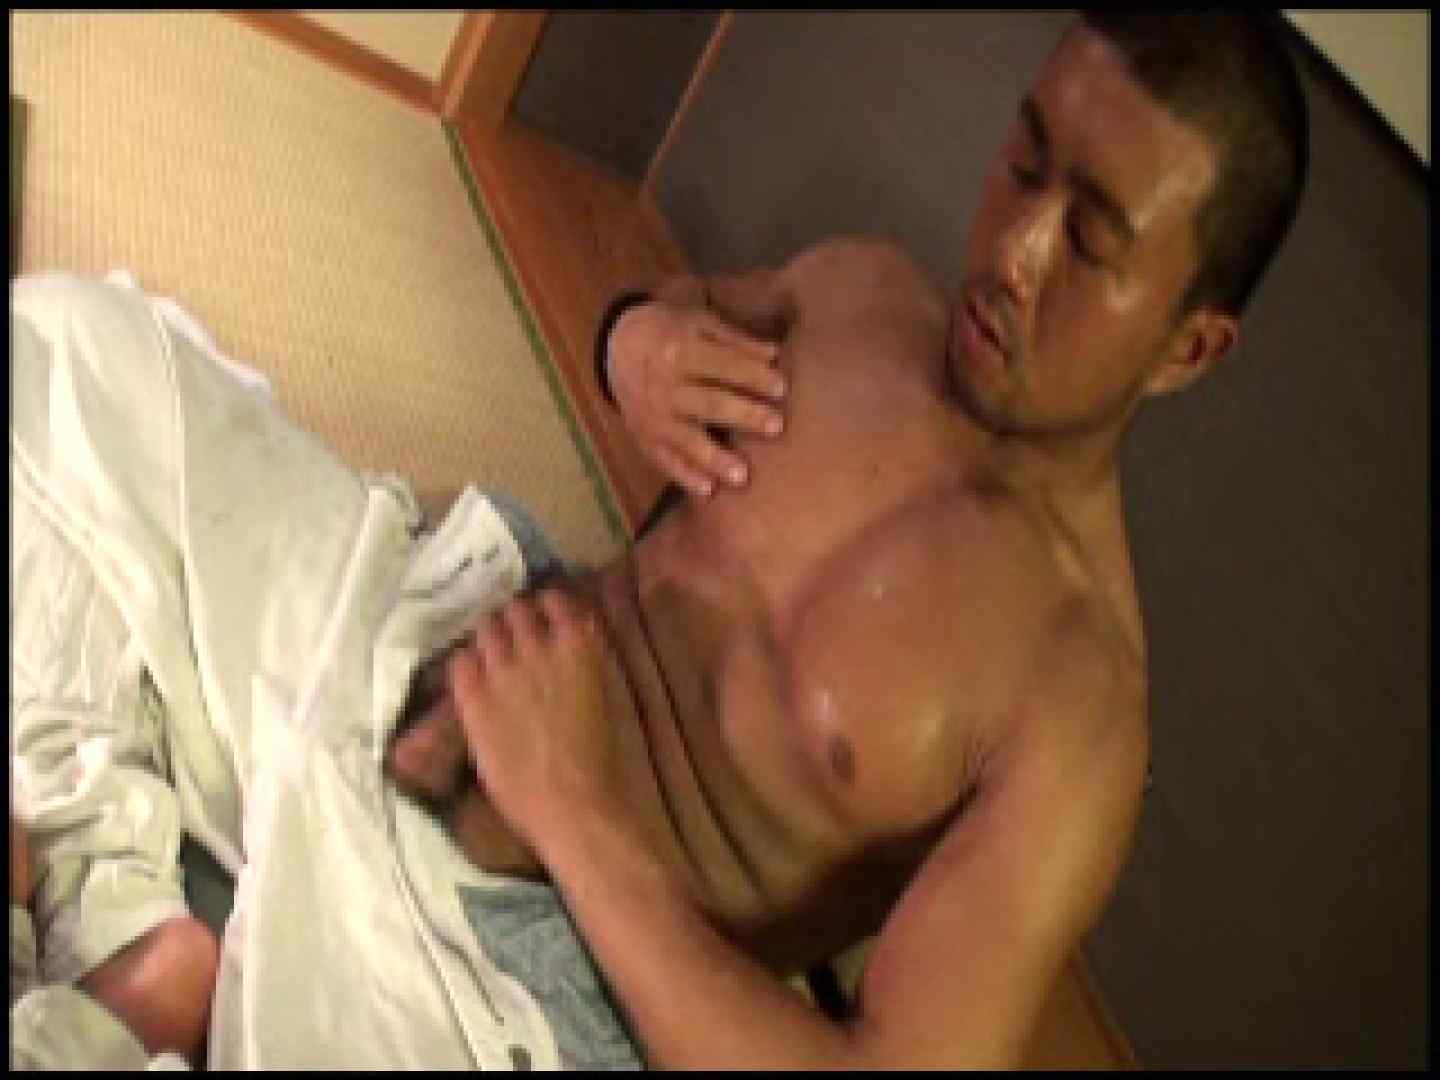 SUPER MUSCLE GAIN!!〜鋼鉄の筋肉〜vol.01  オナニー 男同士動画 100pic 65